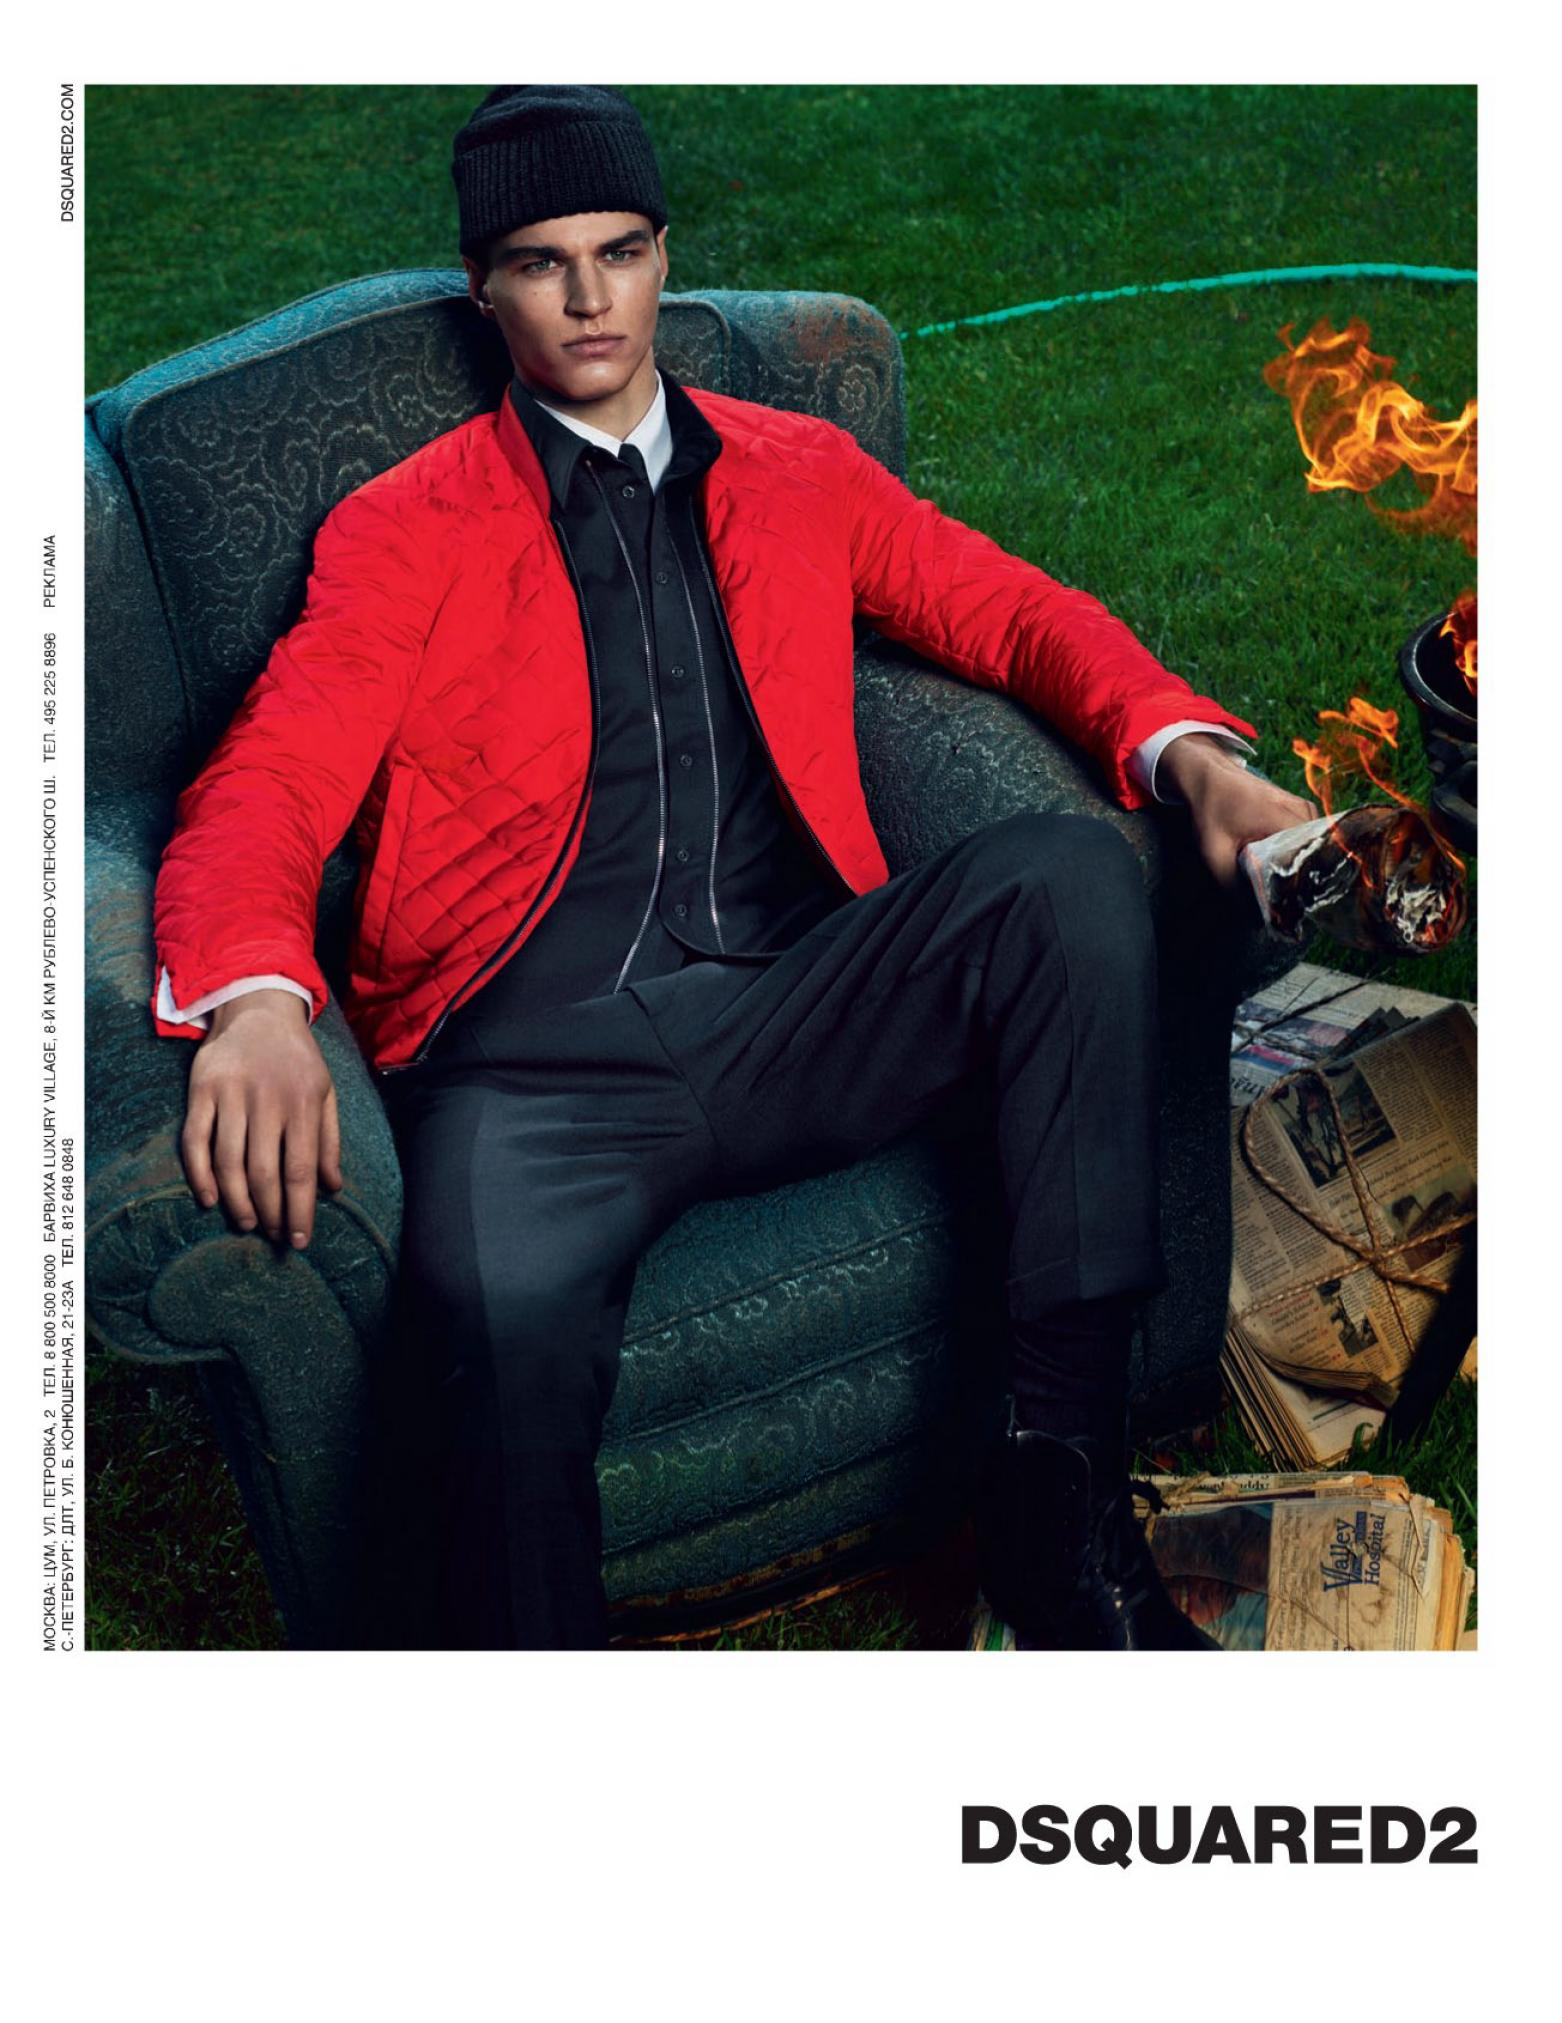 arran sly model in dsquared2 campaign fashion menswear